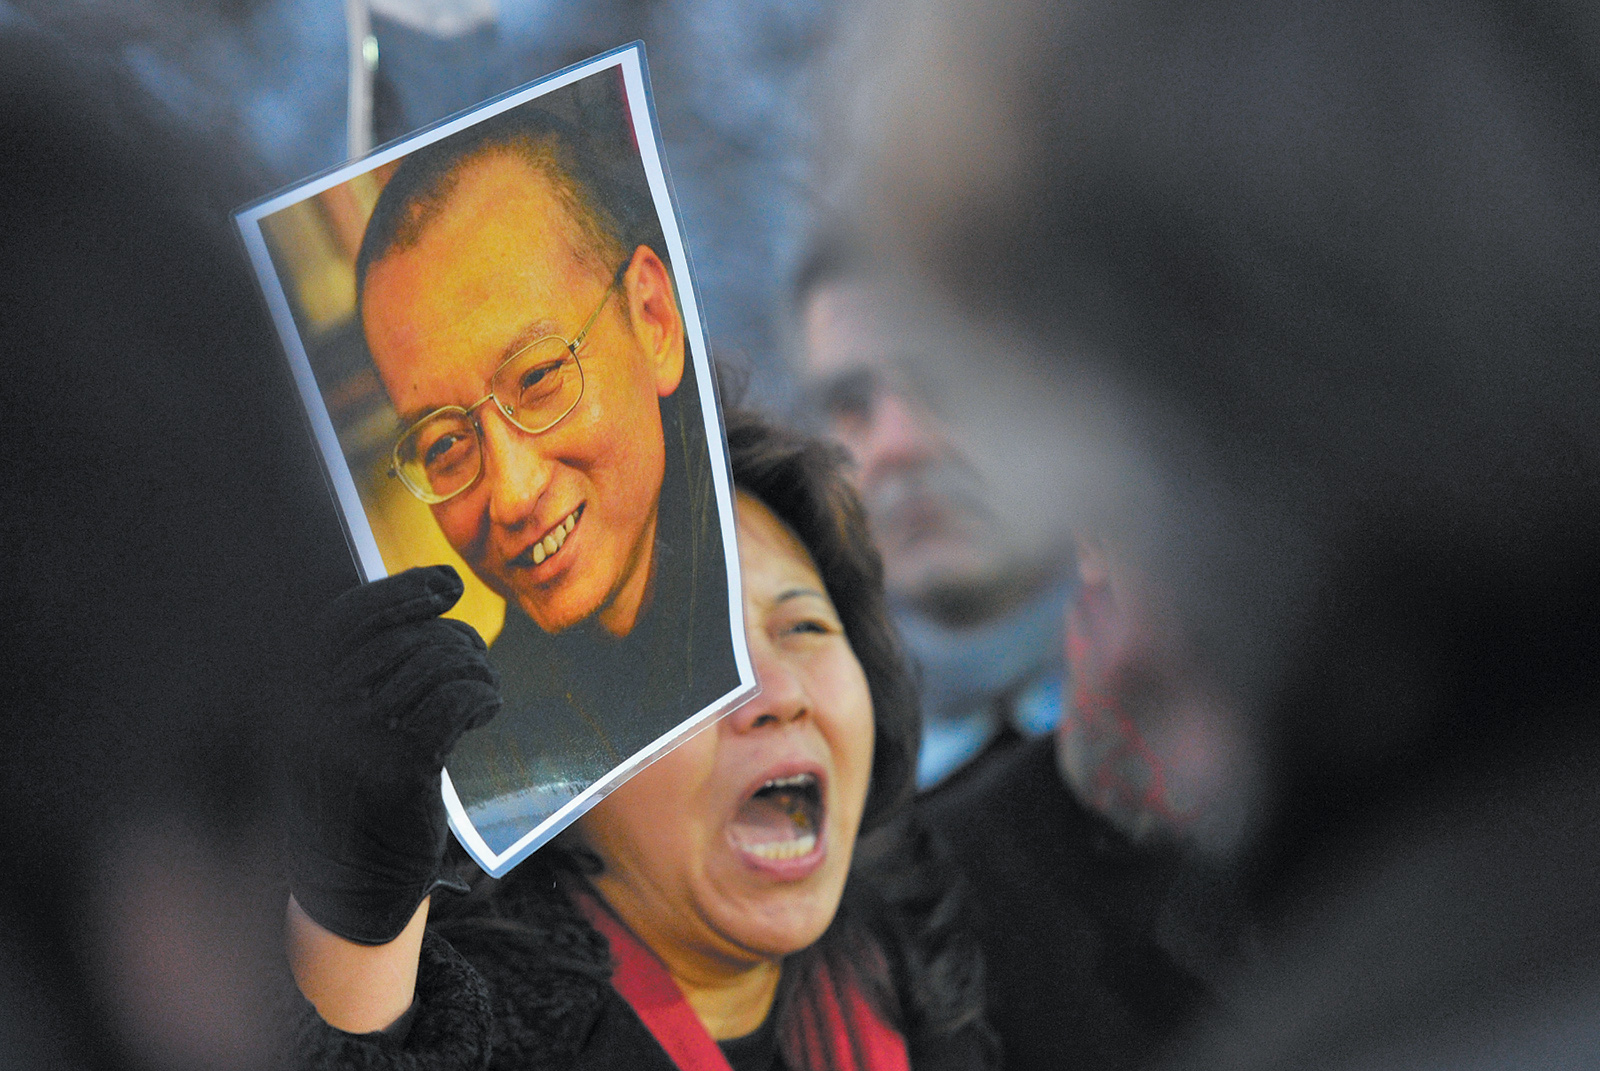 A protester holding an image of the imprisoned Chinese poet and Nobel Peace Prize laureate Liu Xiaobo, Oslo, December 2010